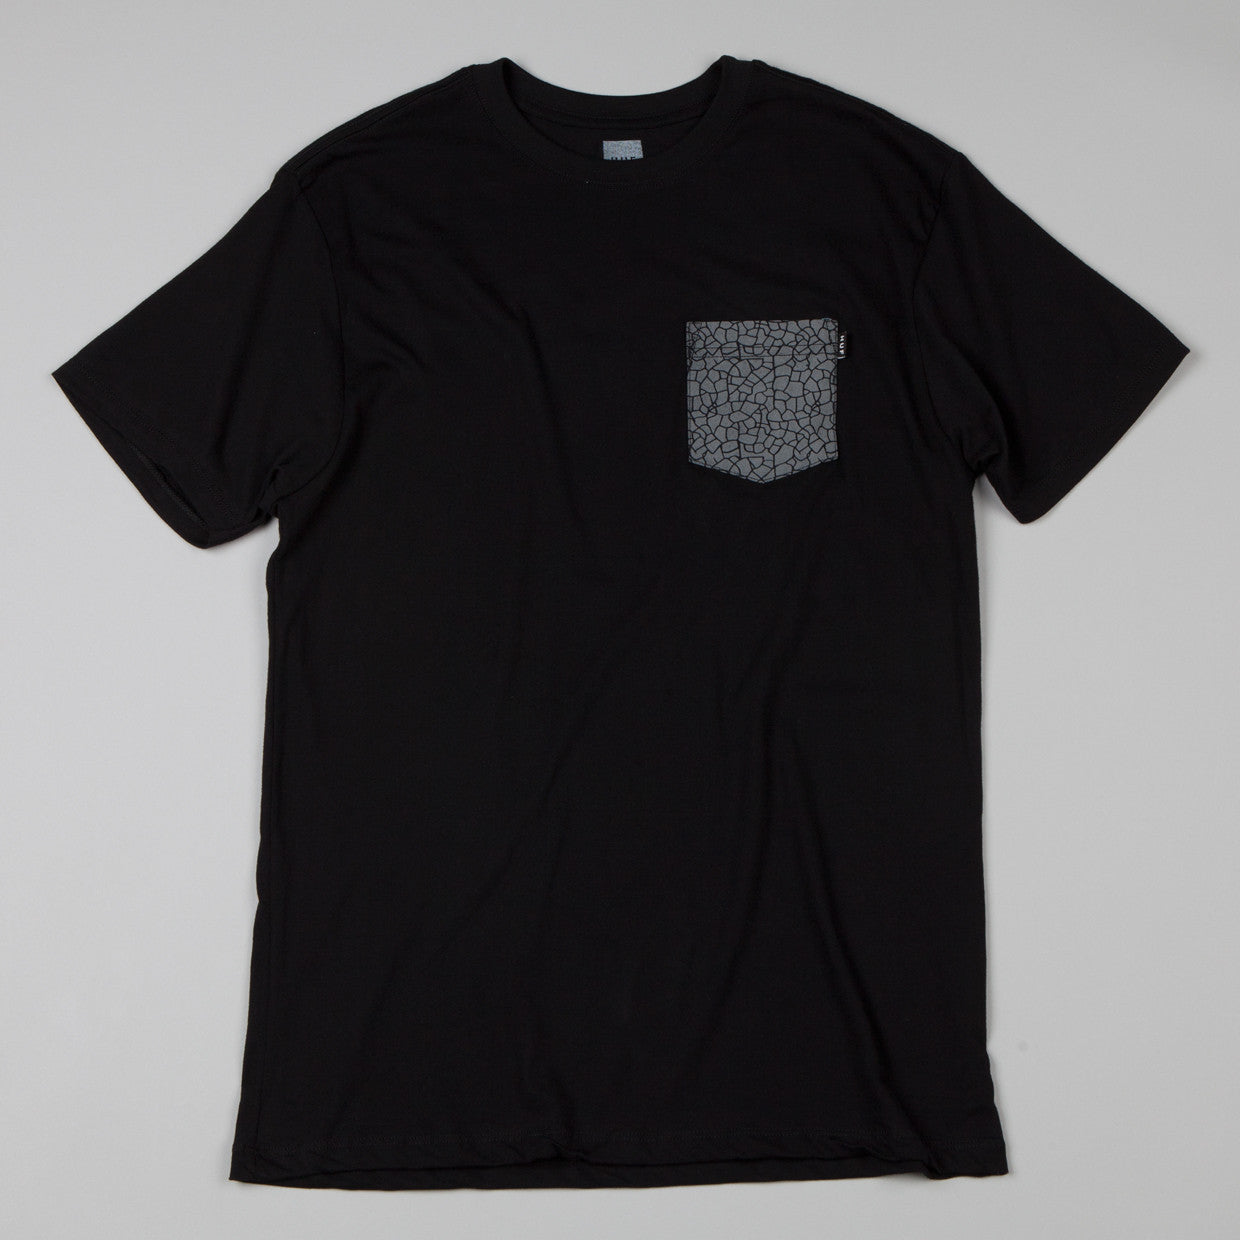 HUF Quake Pocket T-shirt Black